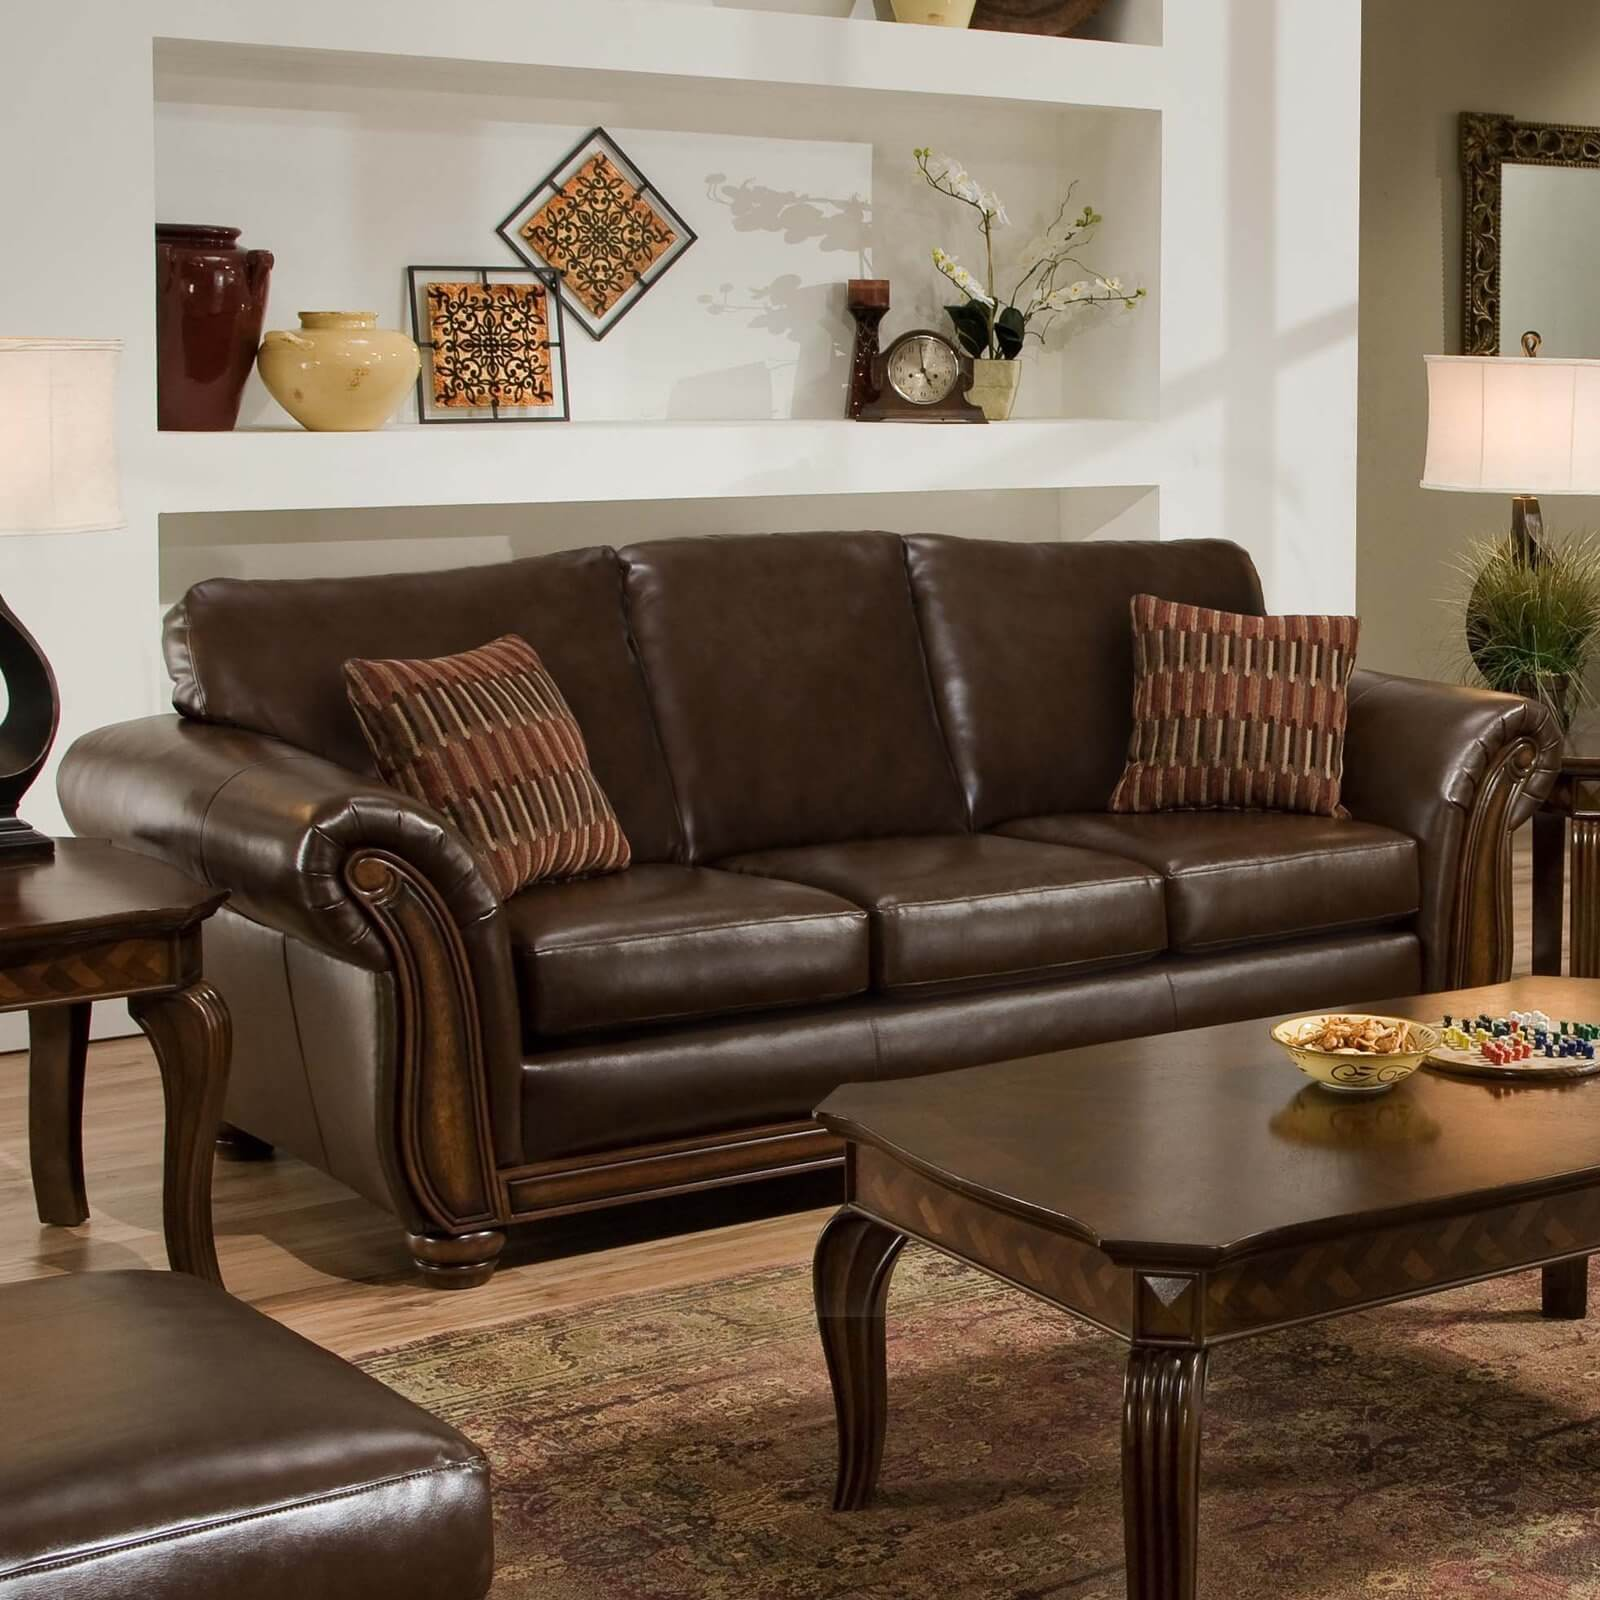 Comfortable brown leather sofa